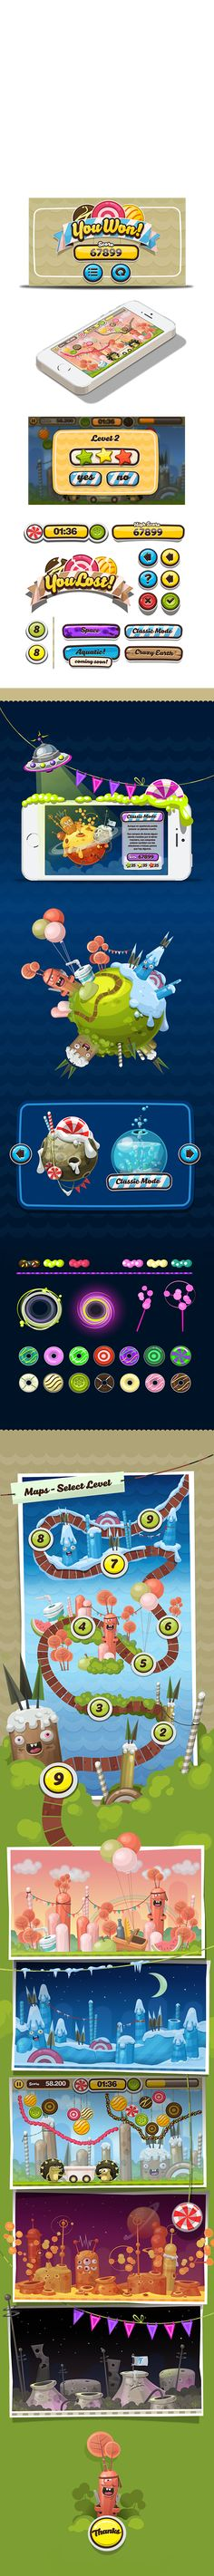 Feed the Twins. Mobile Game on Behance